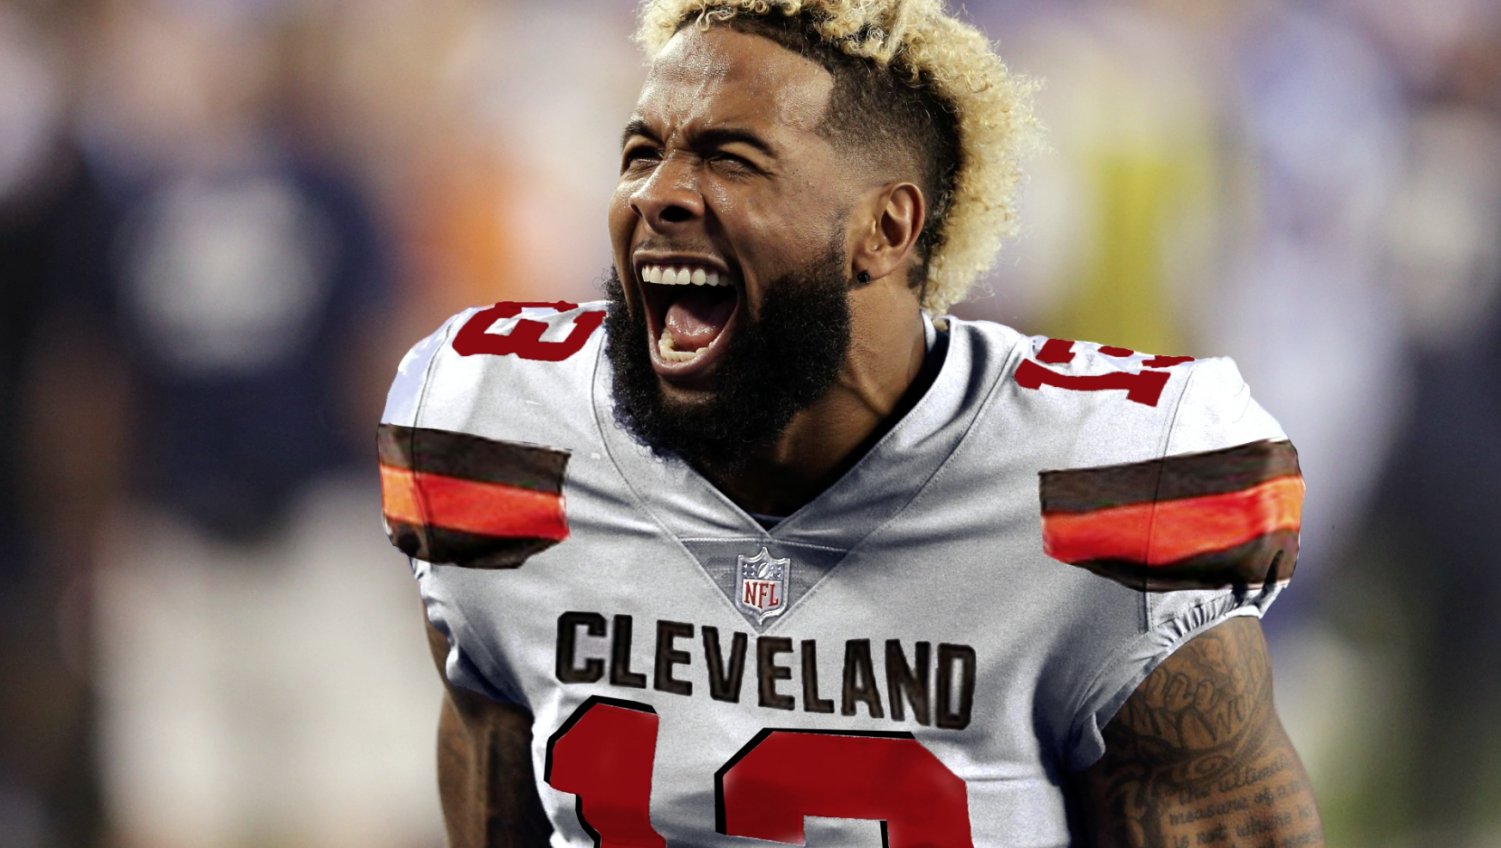 Odell Beckham Jr. is excited to start a new chapter of his career in Cleveland.